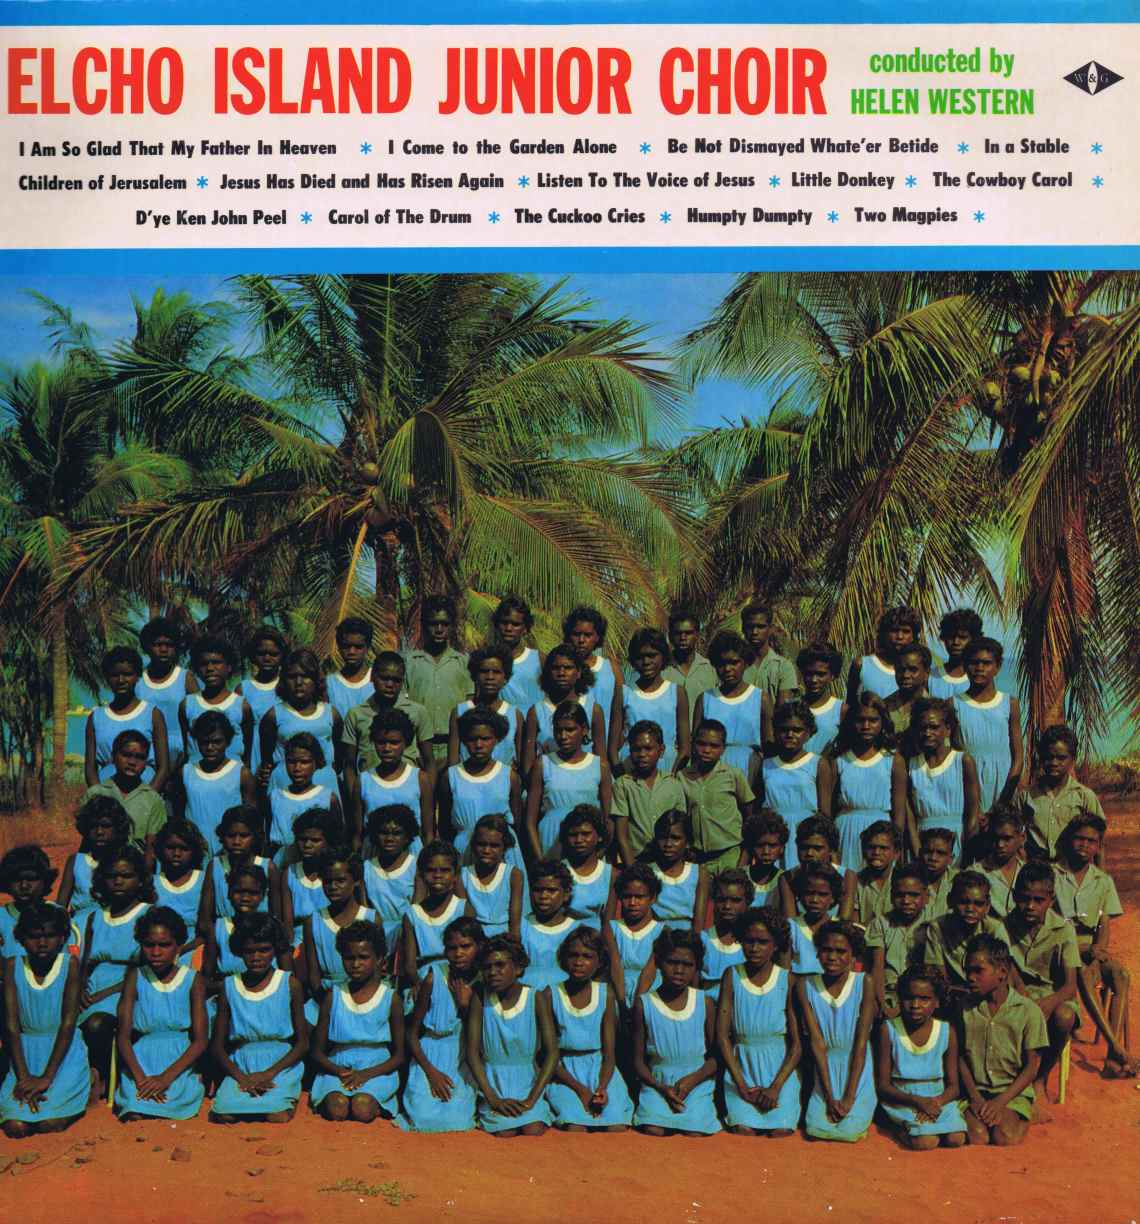 Elcho Island Junior Choir